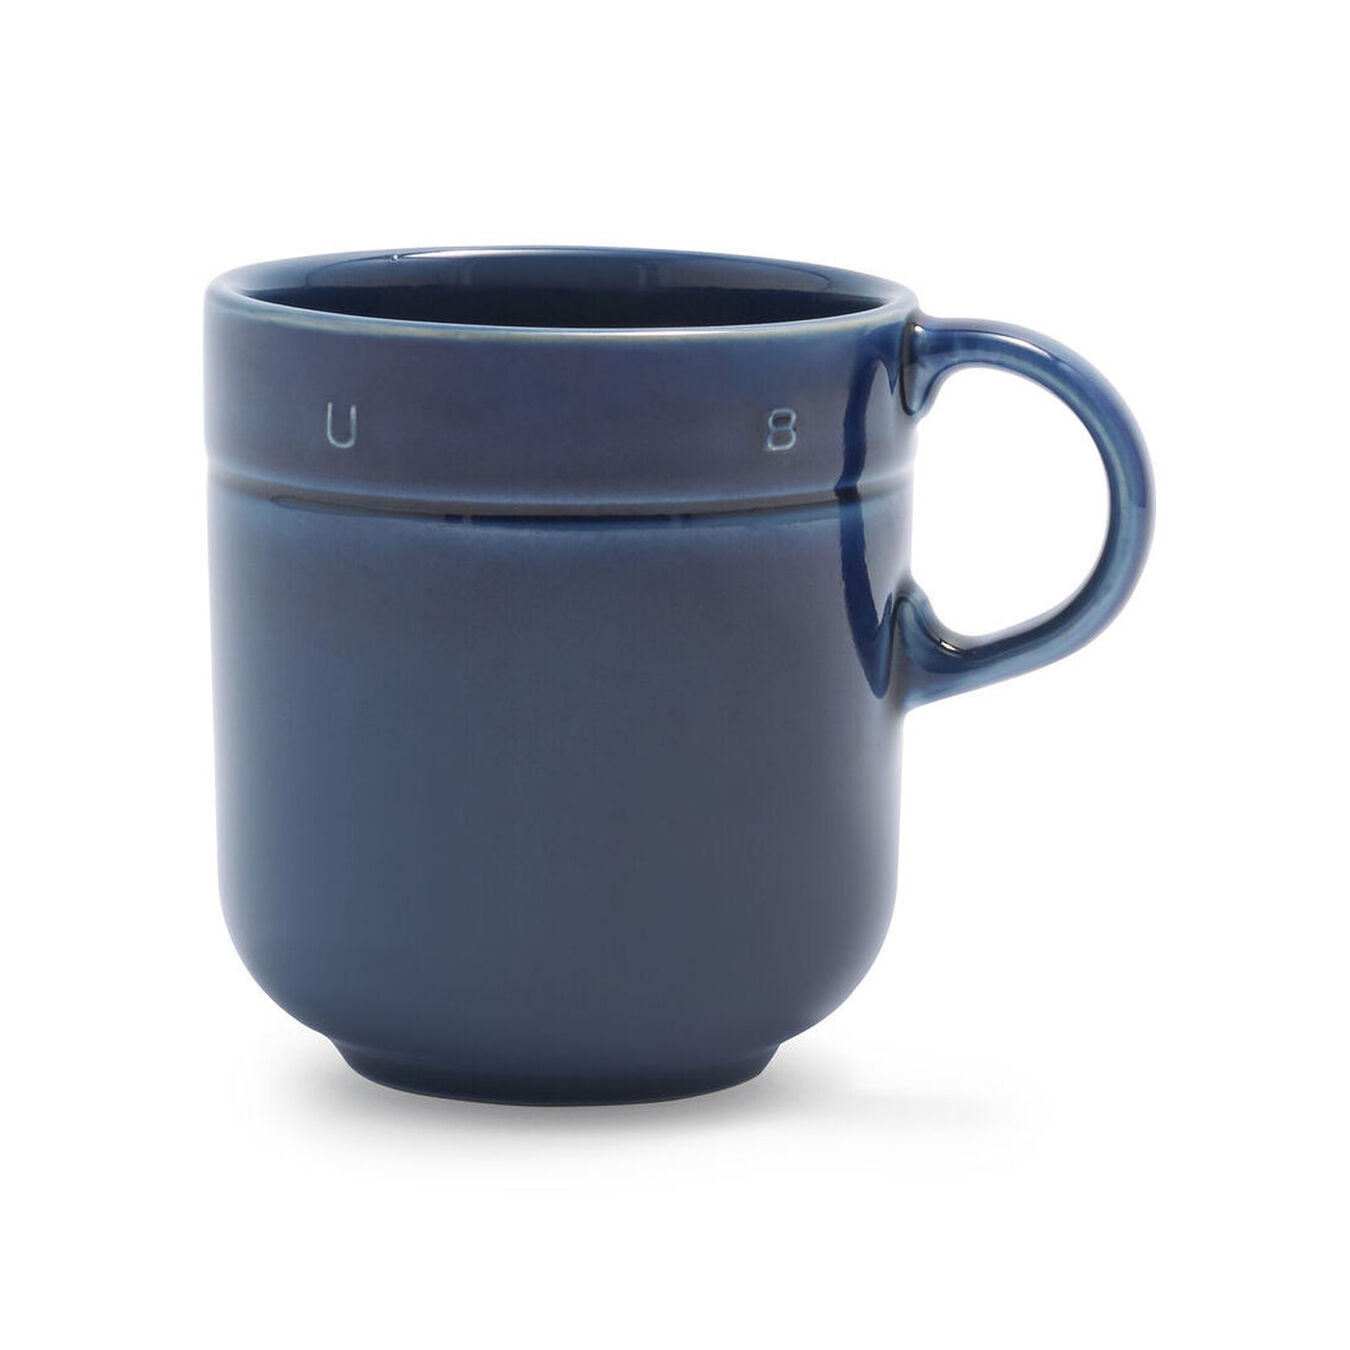 0.5 qt, Ceramic, Mug, dark blue,,large 1